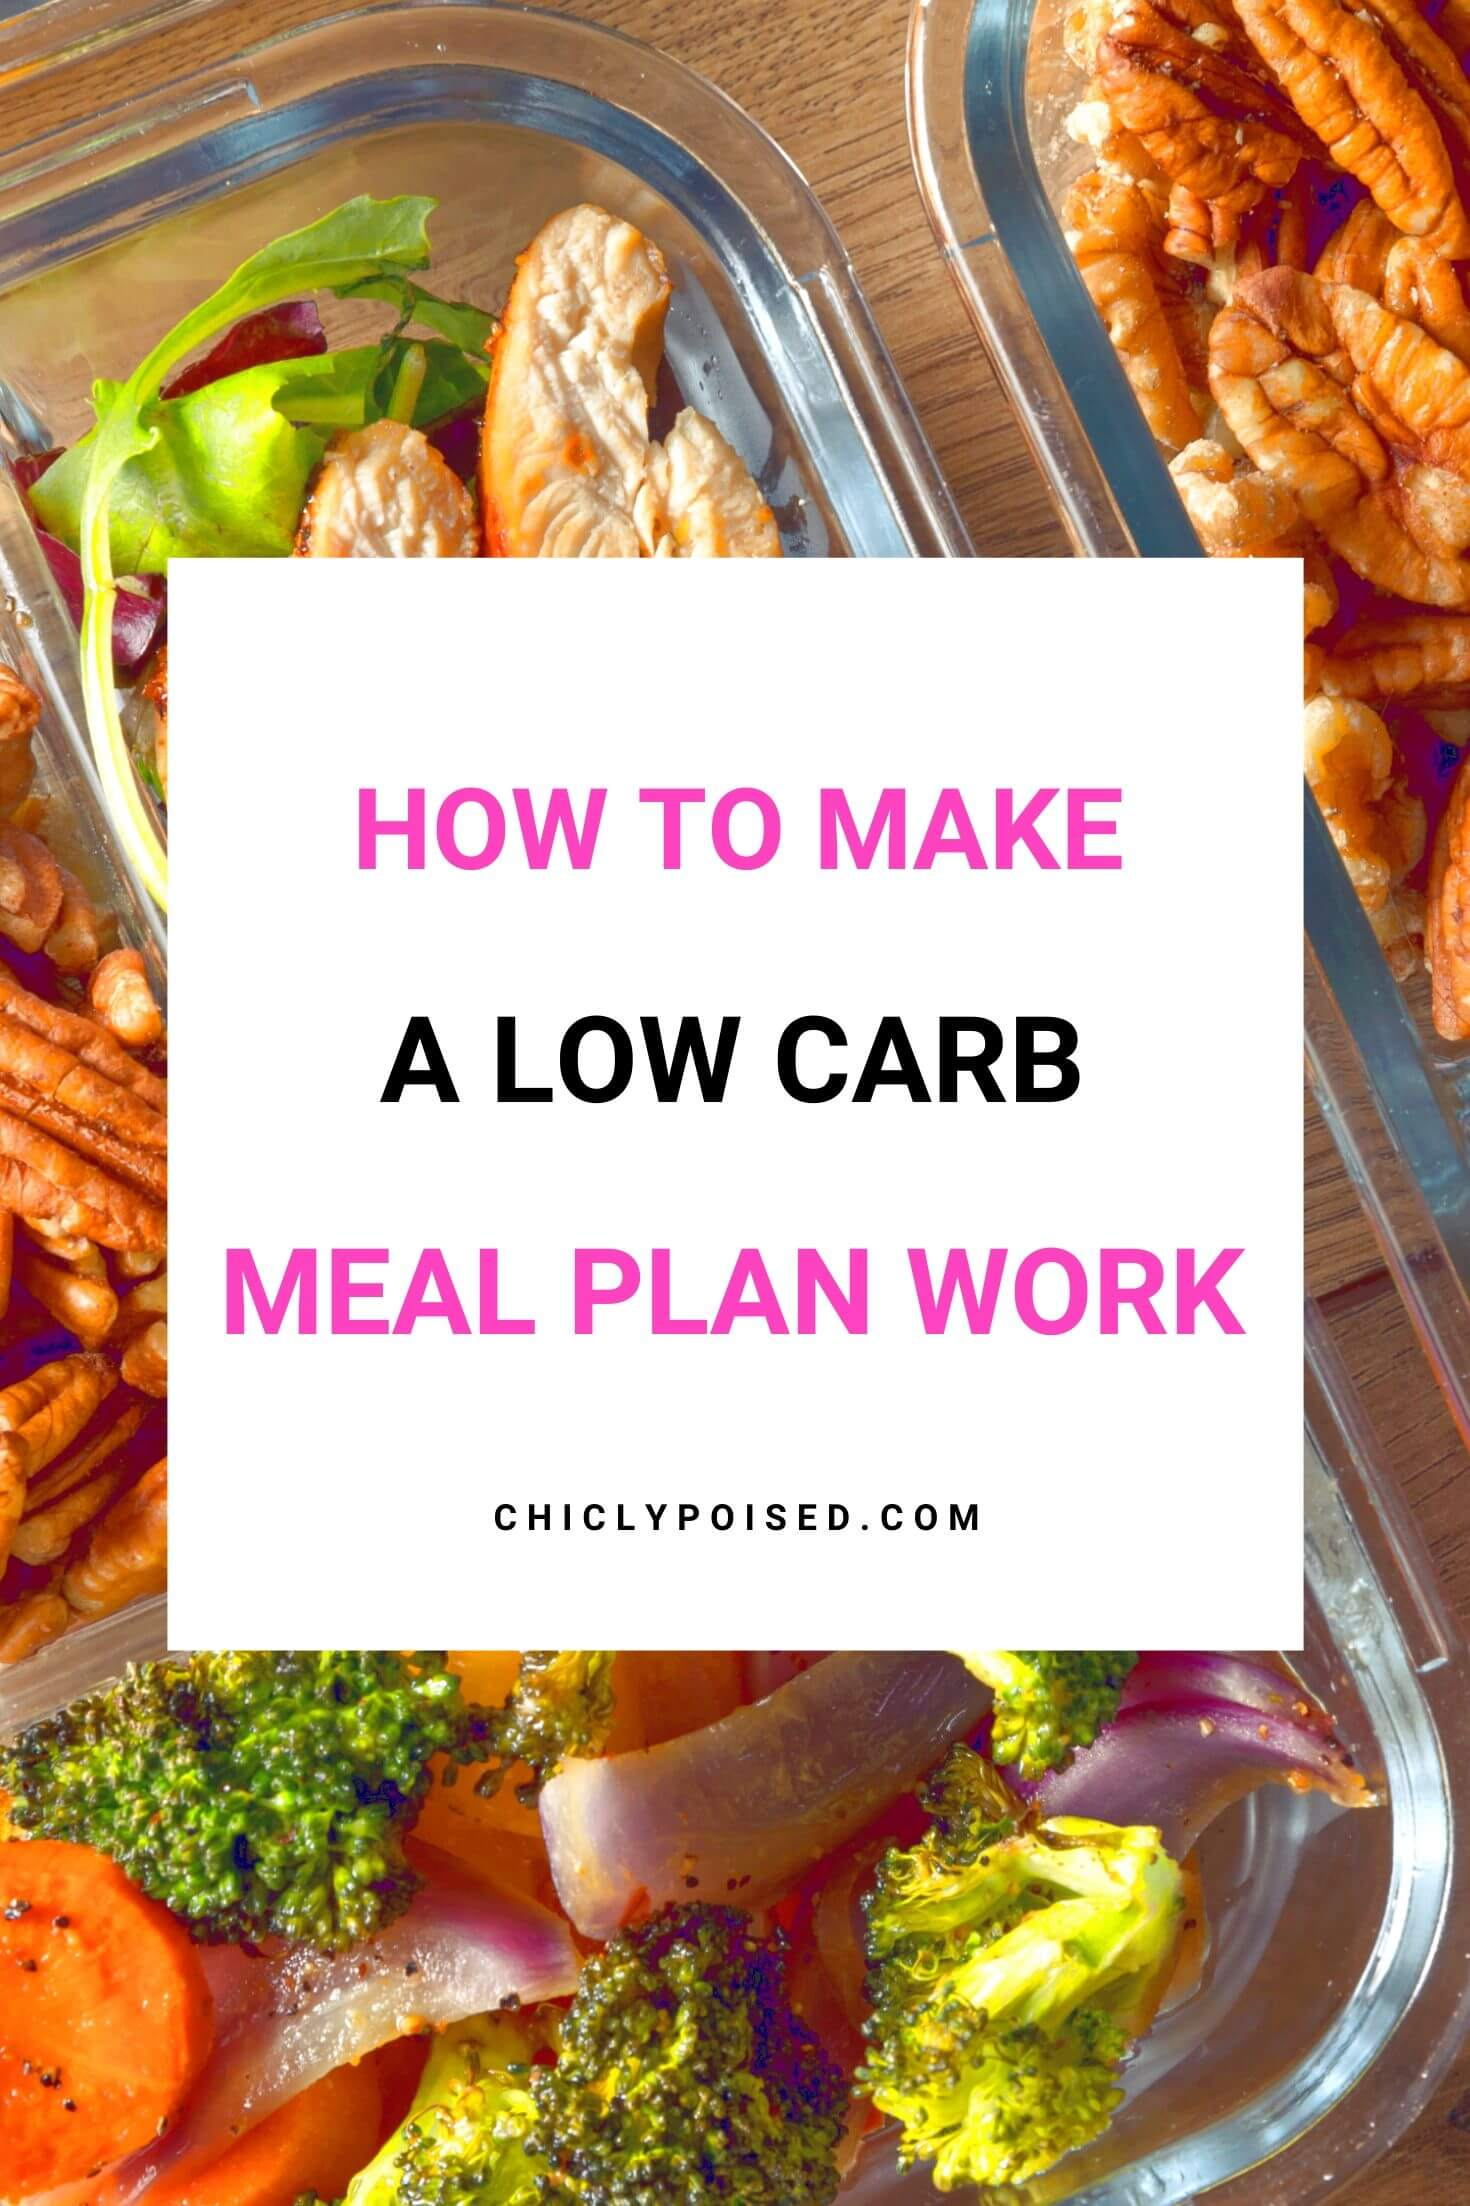 How To Make A Low Carb Meal Plan Work For You 2 of 2